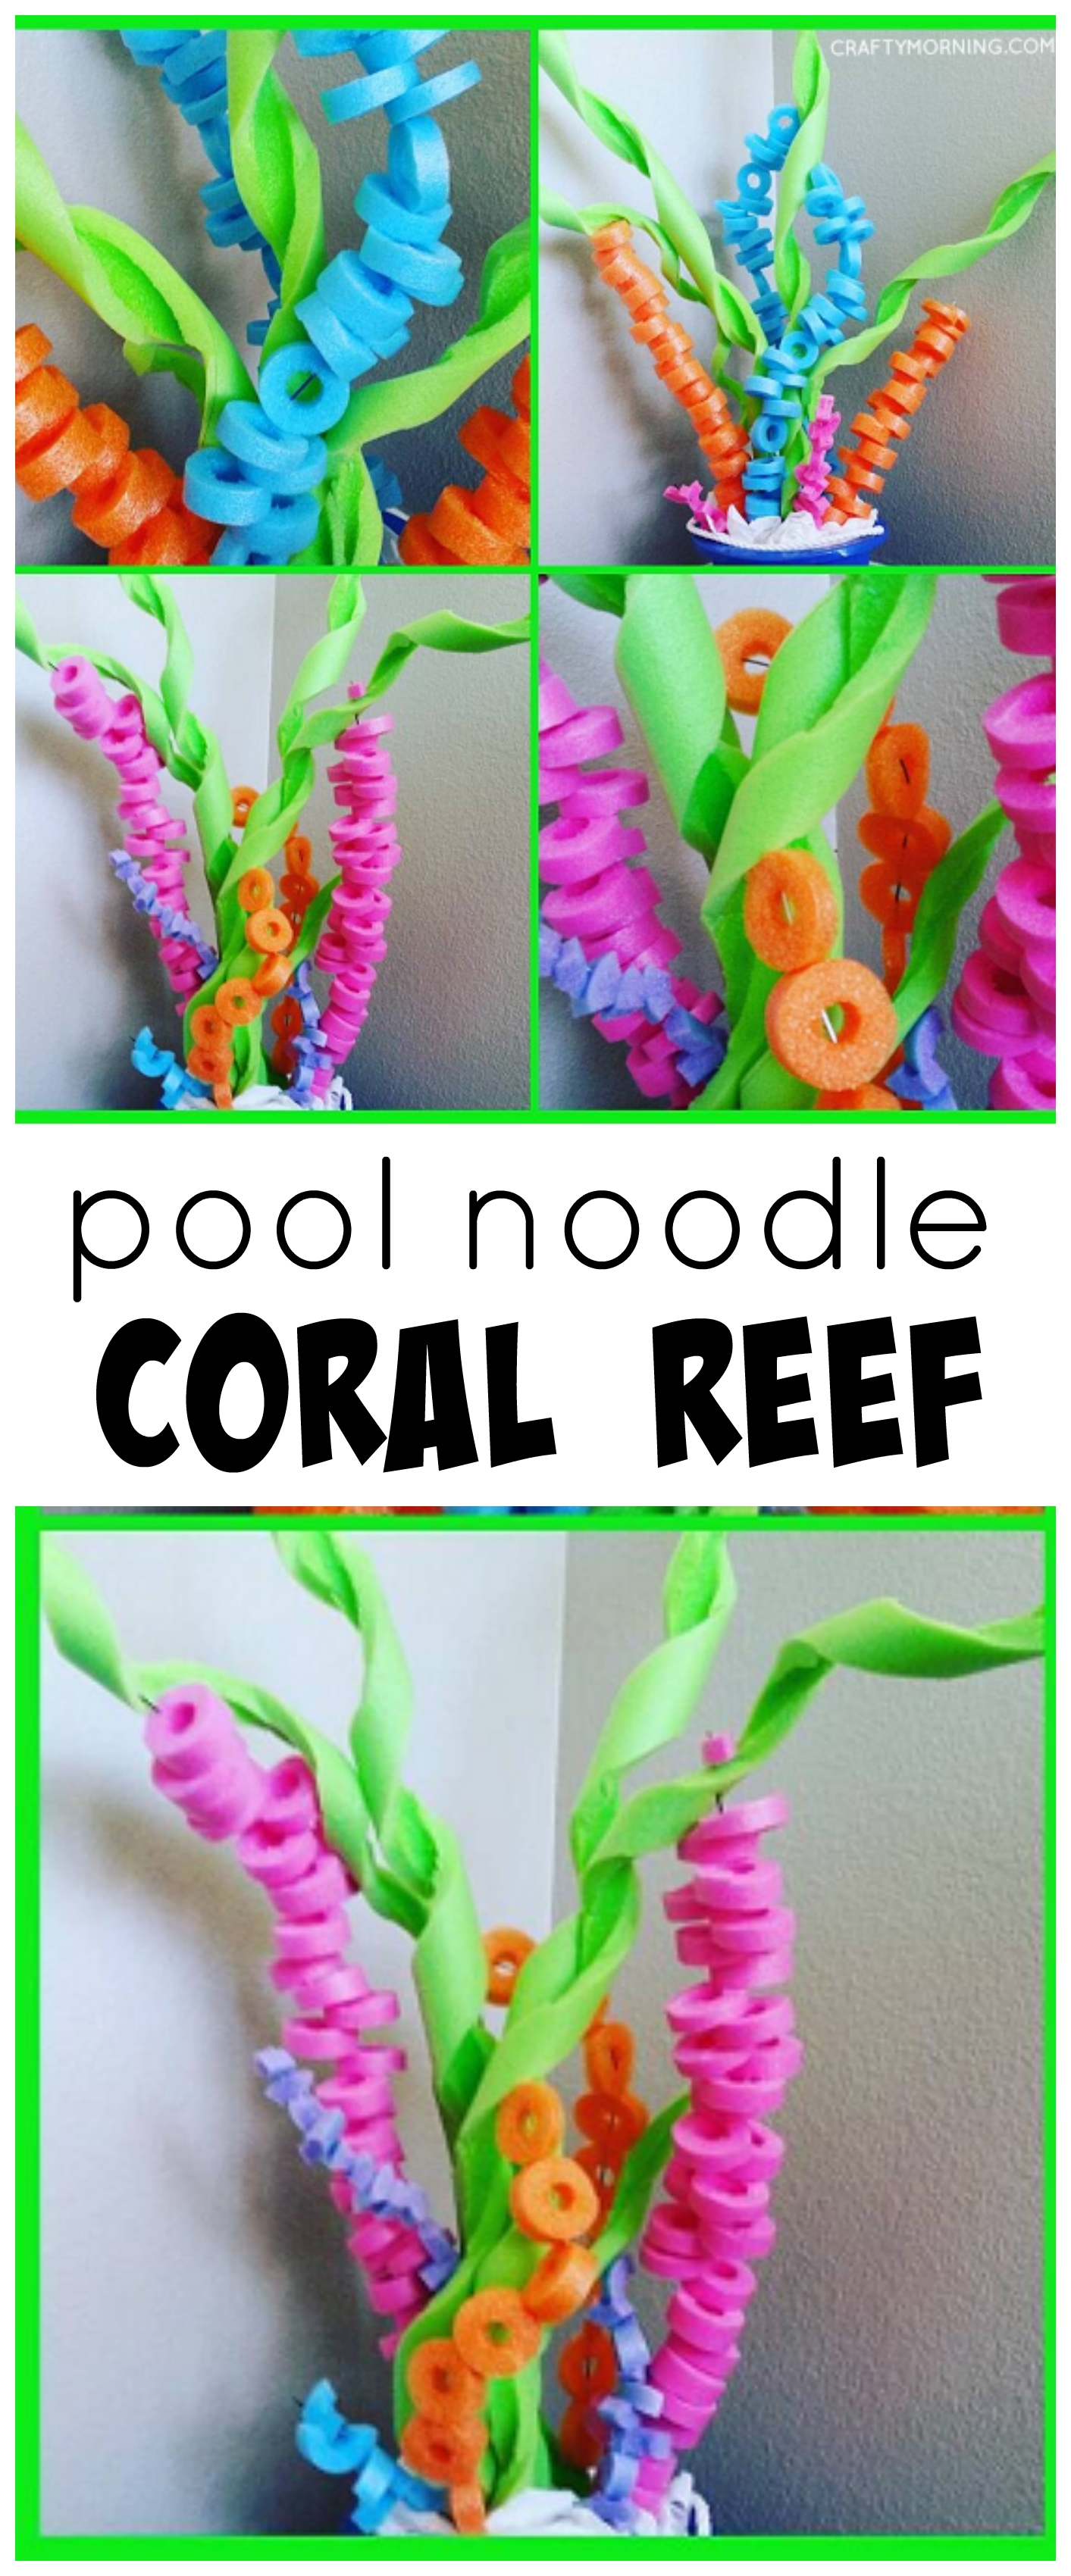 10 Attractive Under The Sea Party Ideas pool noodle coral reef craft for an under the sea party with kids